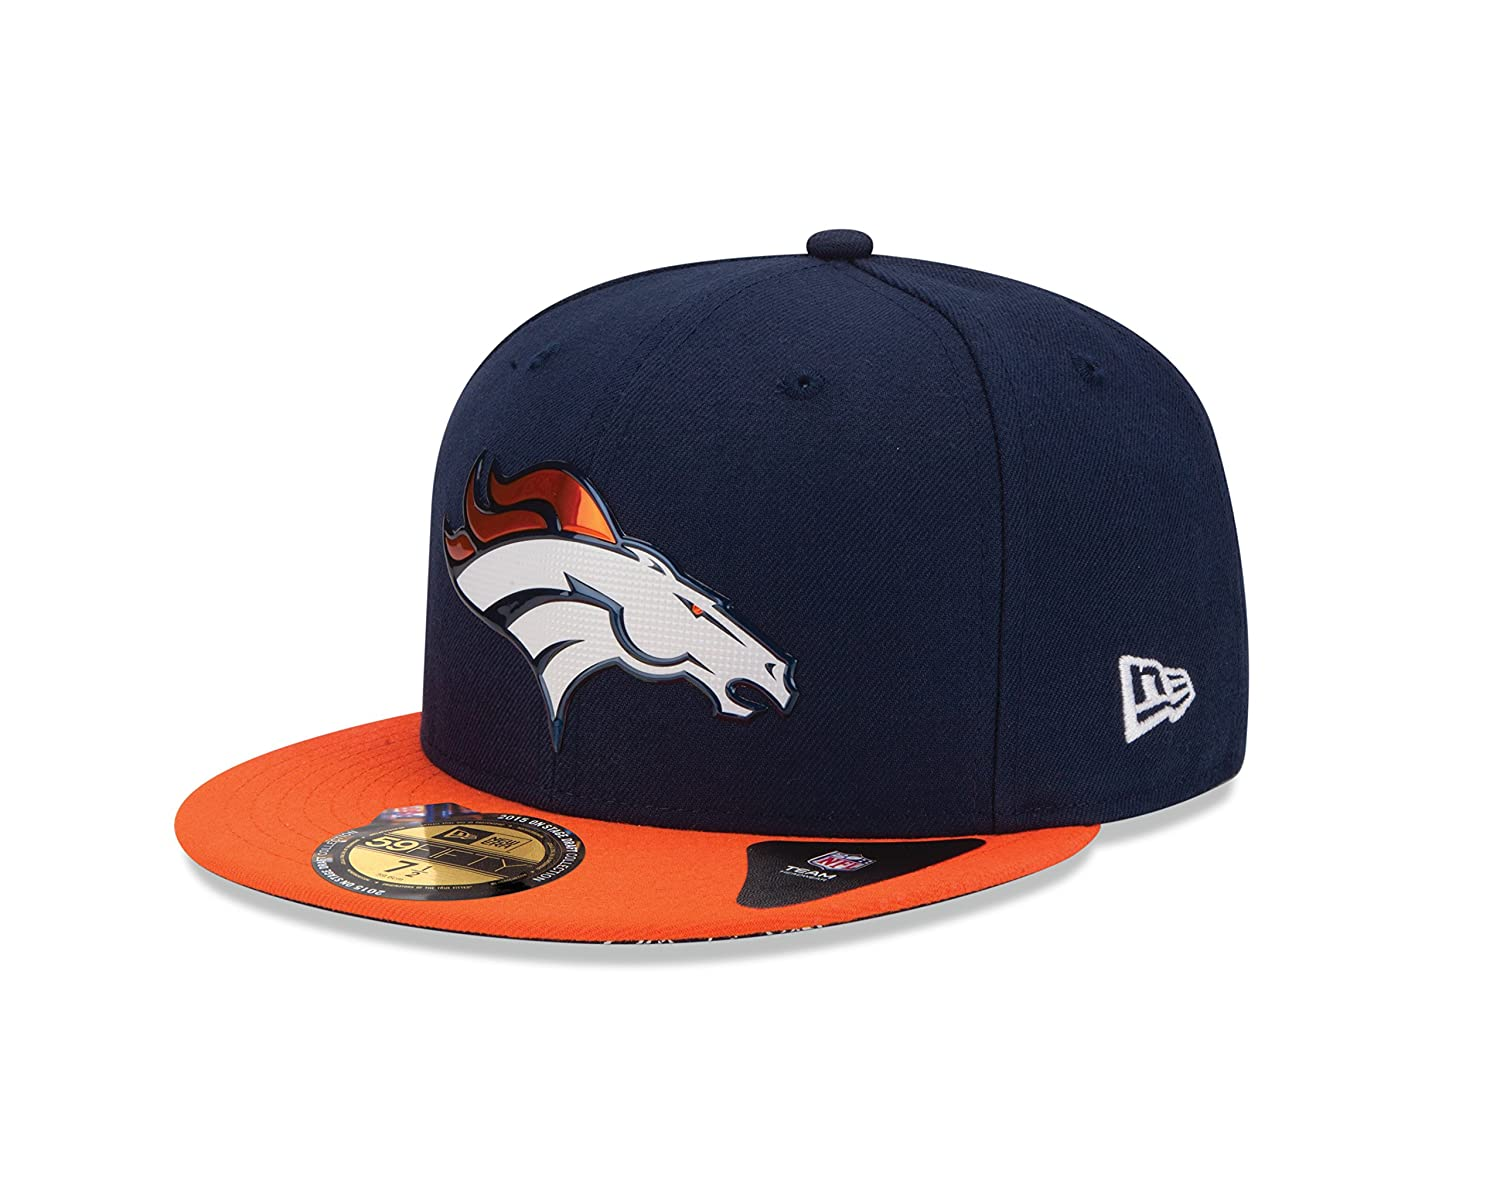 06c4068550c861 Amazon.com : New Era 2015 NFL Draft On Stage 59Fifty Fitted Cap : Clothing